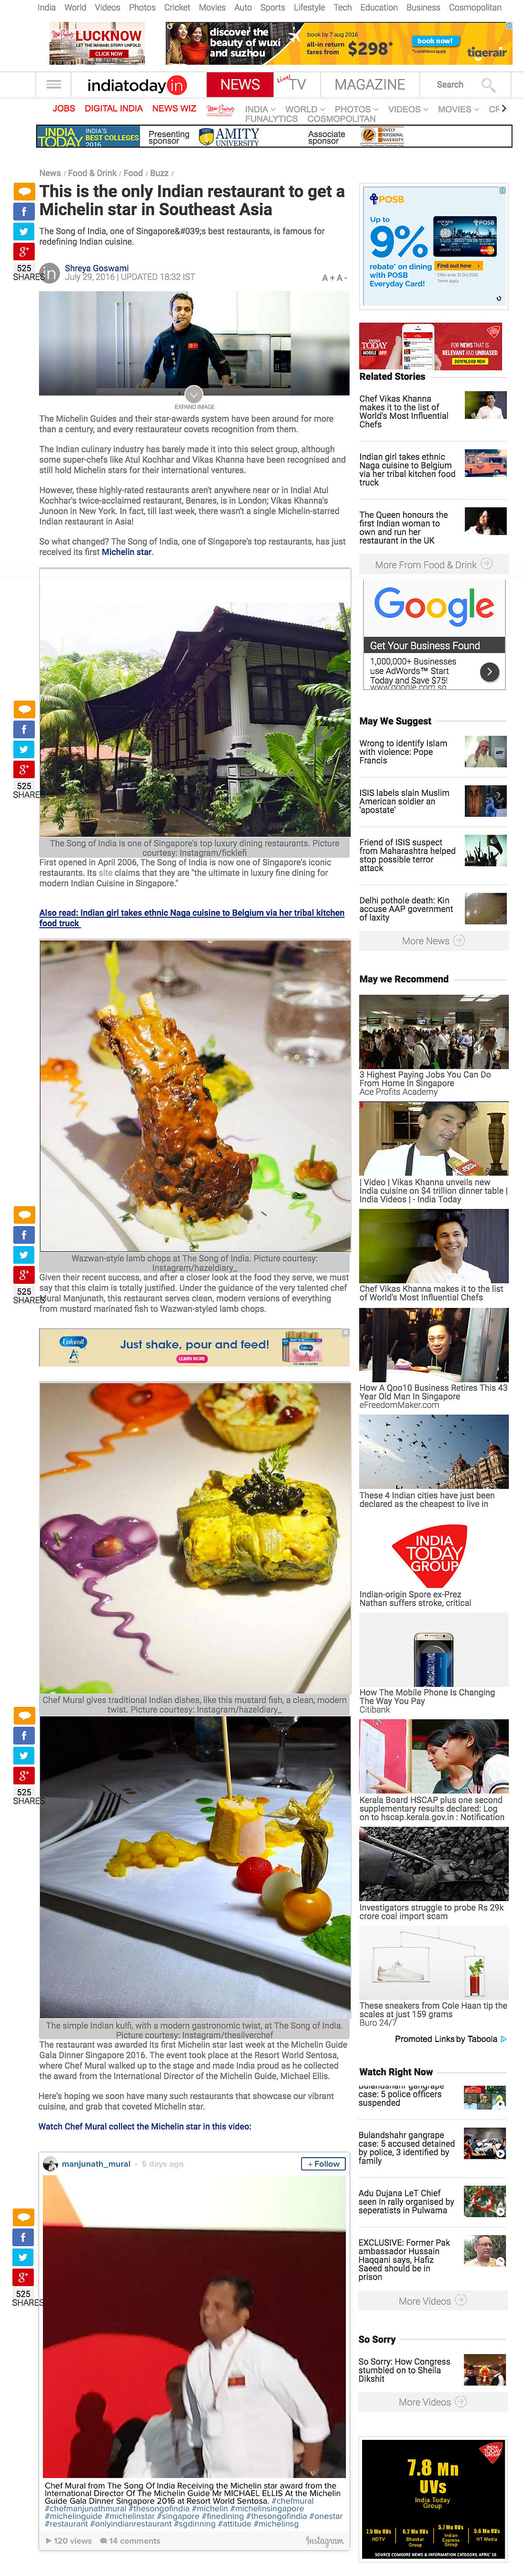 India Today, 29 July 2016 - This is the only Indian restaurant to get Michelin star in Southeast Asia